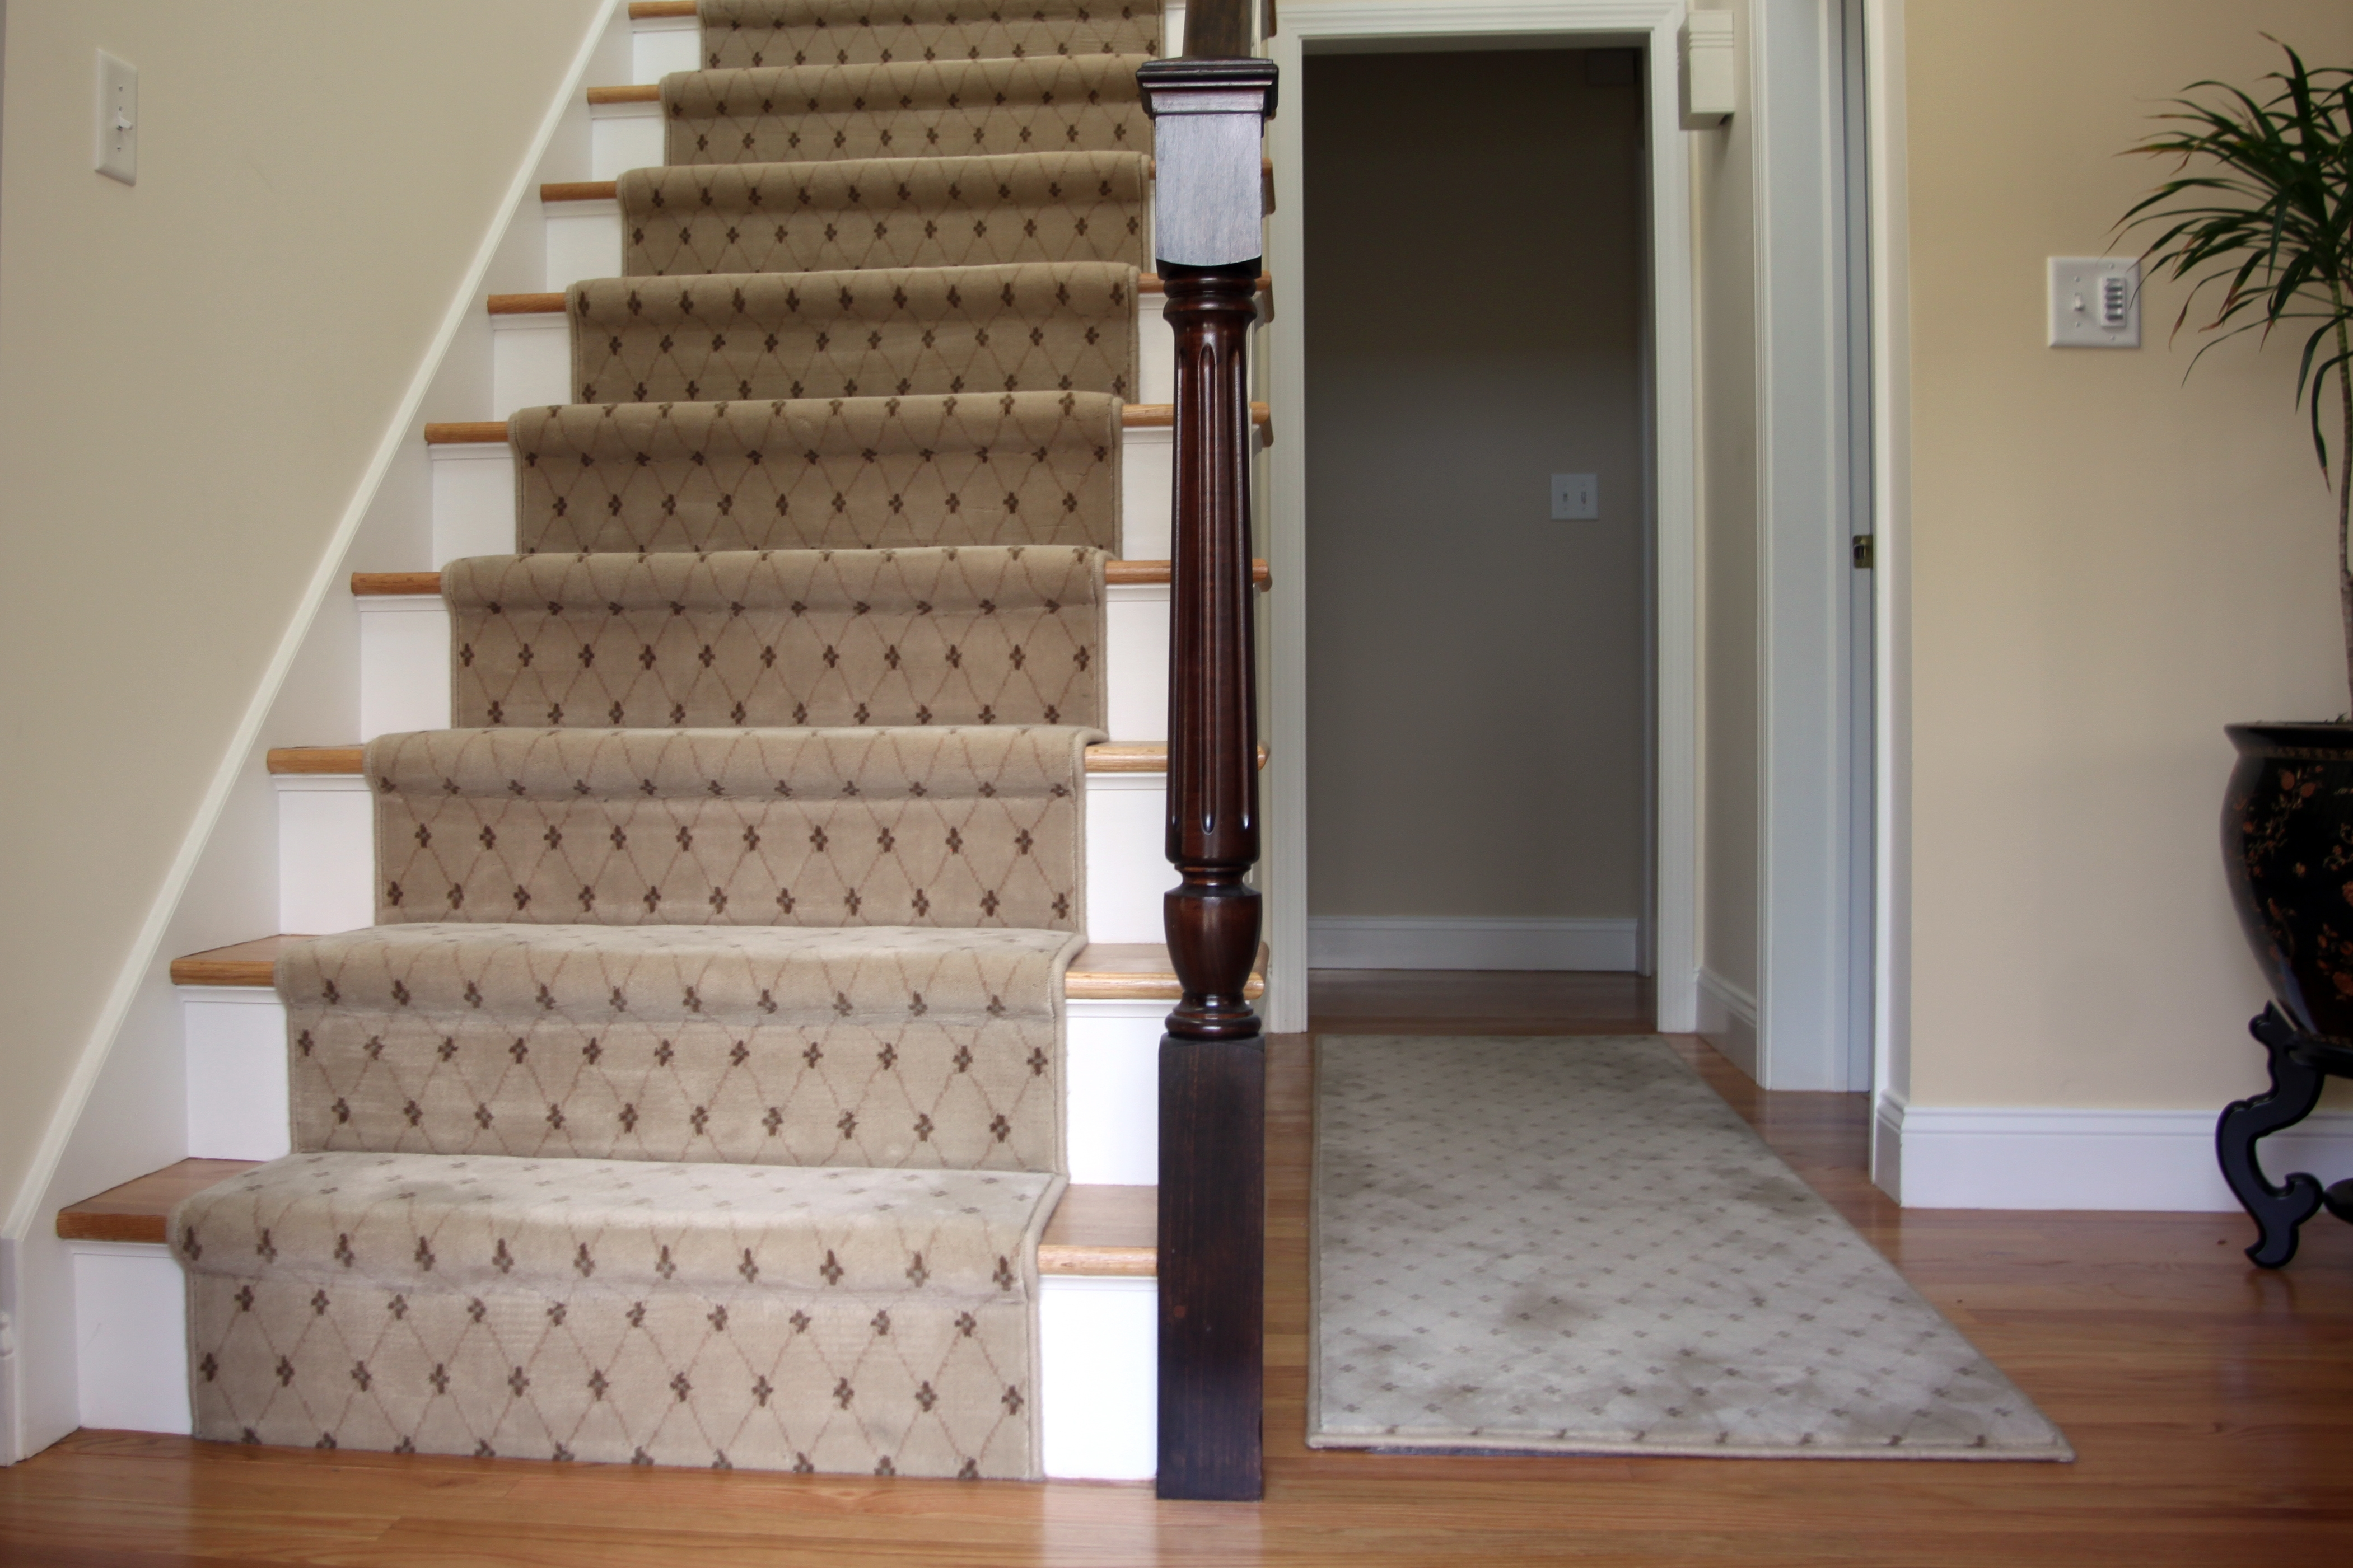 Flooring Stair Treads Carpet Carpet Tread Carpet Treads For With Decorative Indoor Stair Treads (#15 of 20)